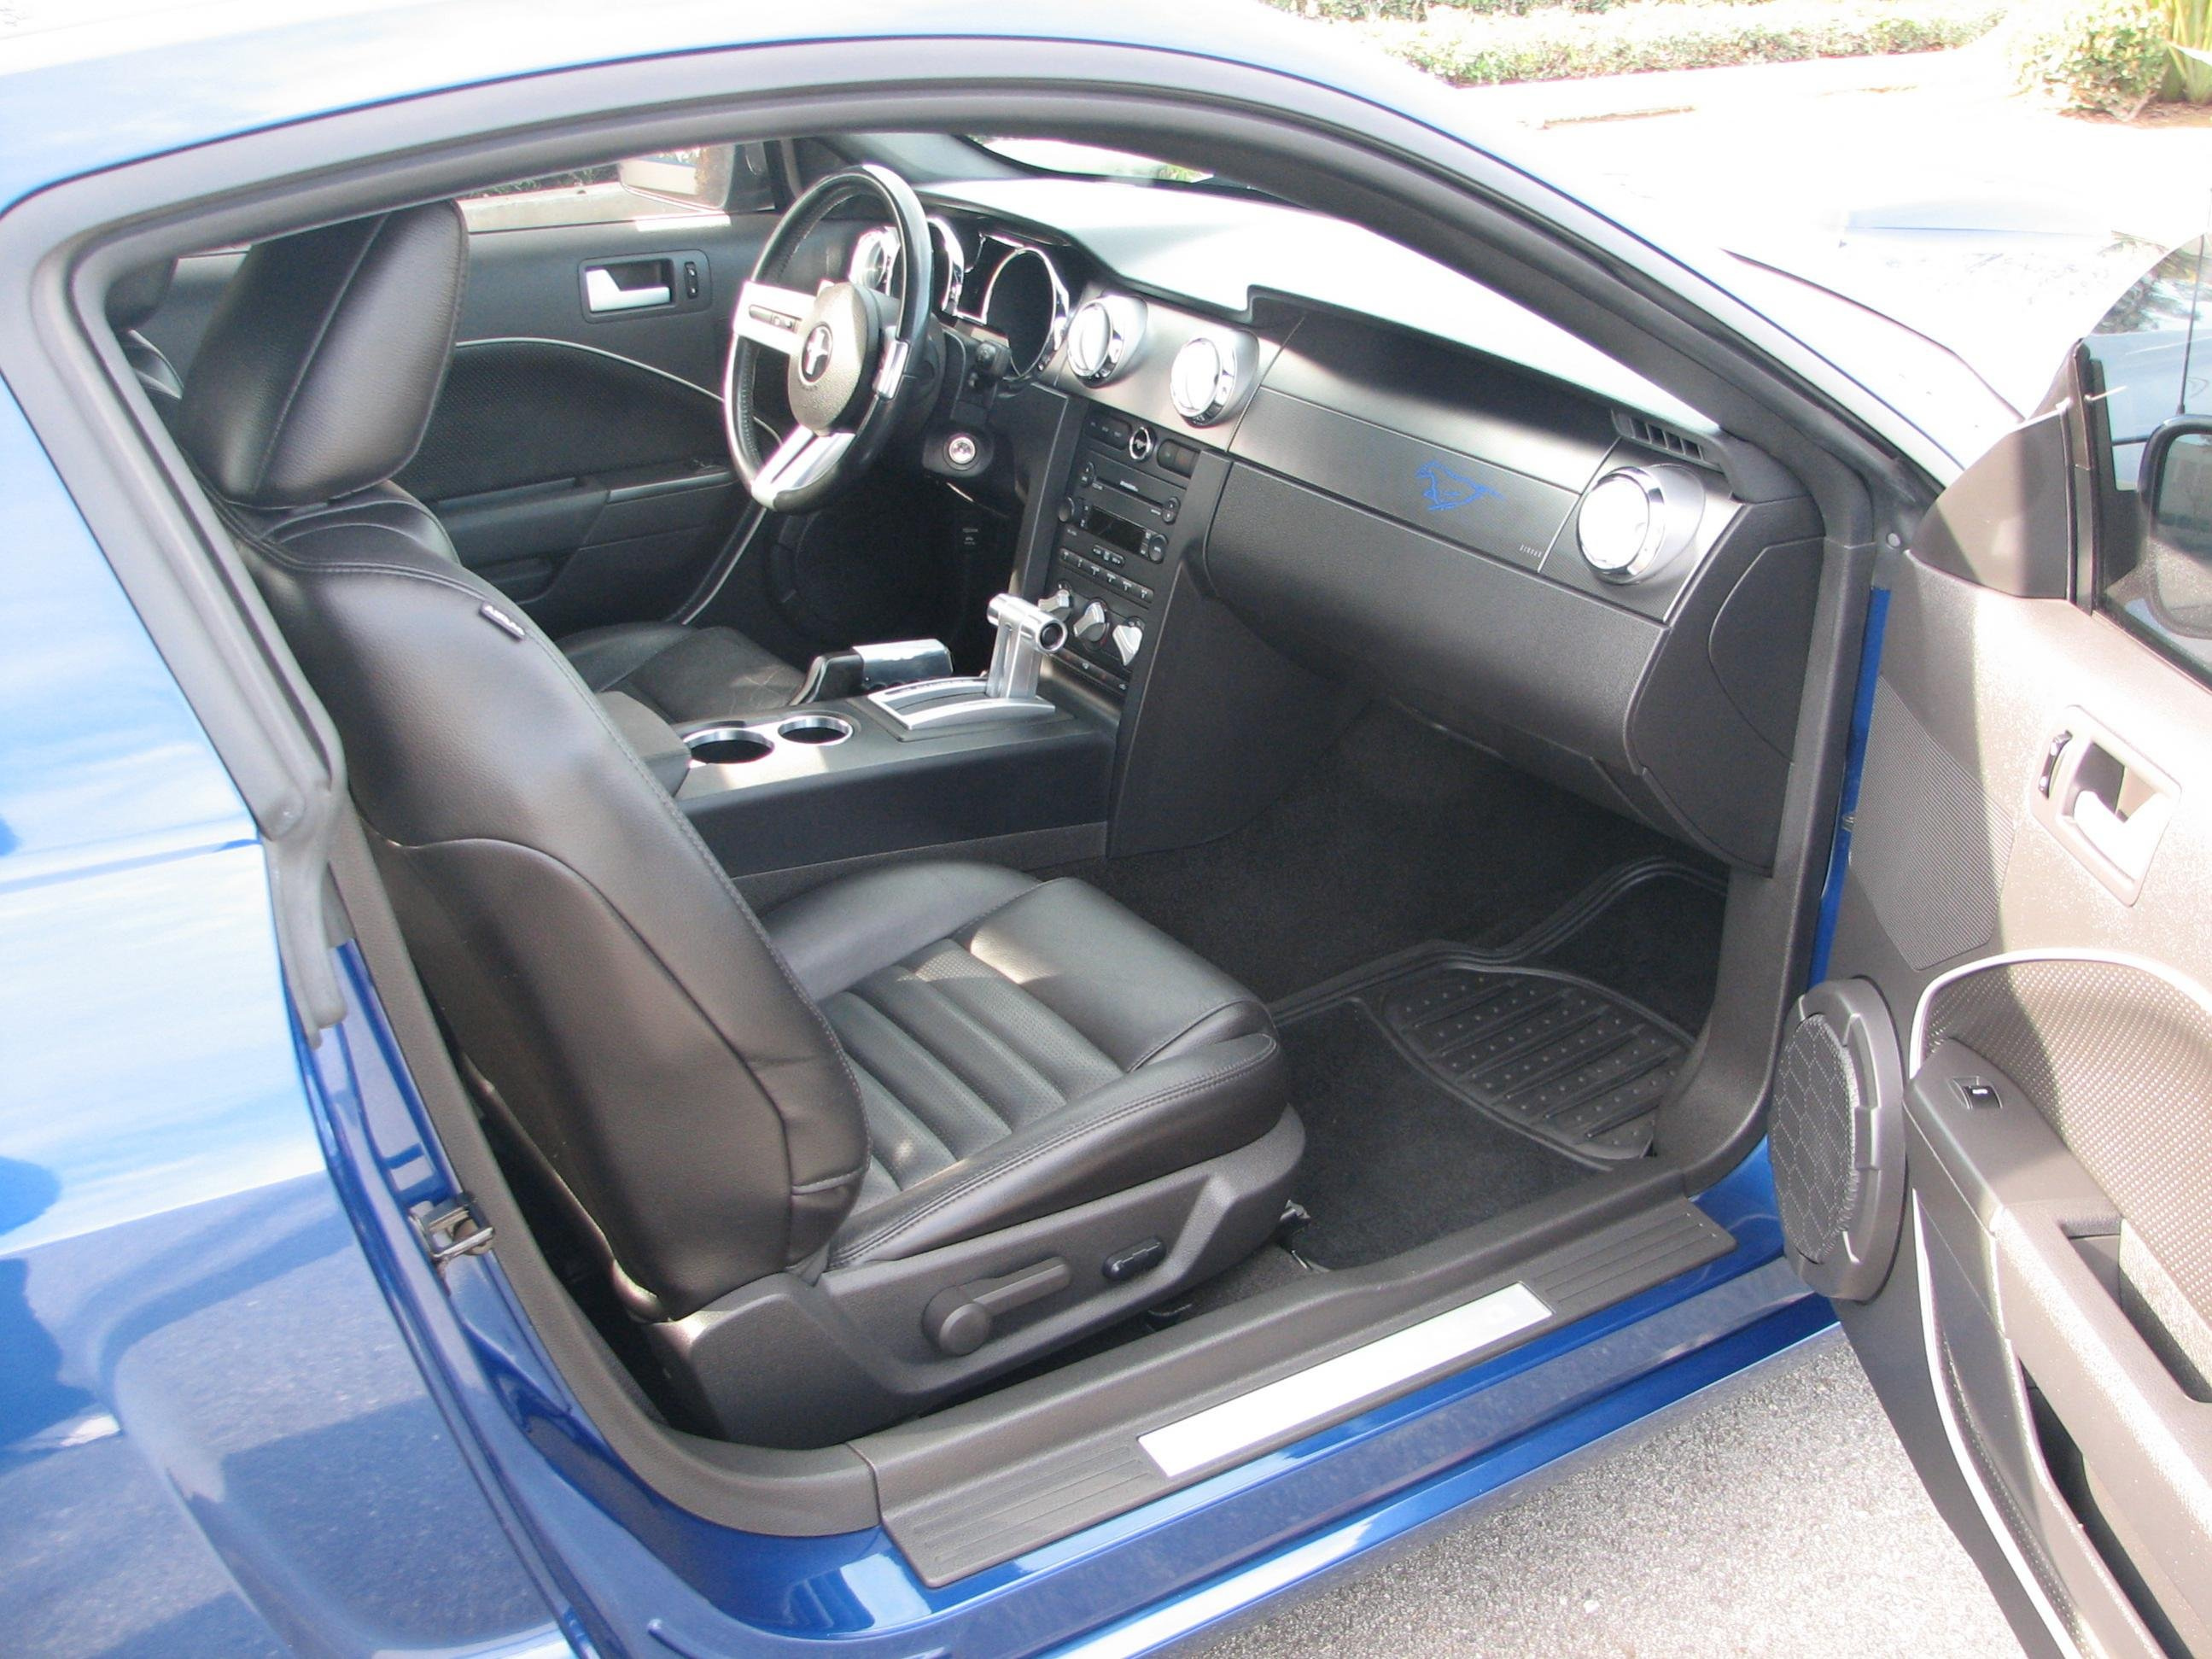 Interior Upholstery 2008 Mustang Deluxe Vs Premium Ford Mustang